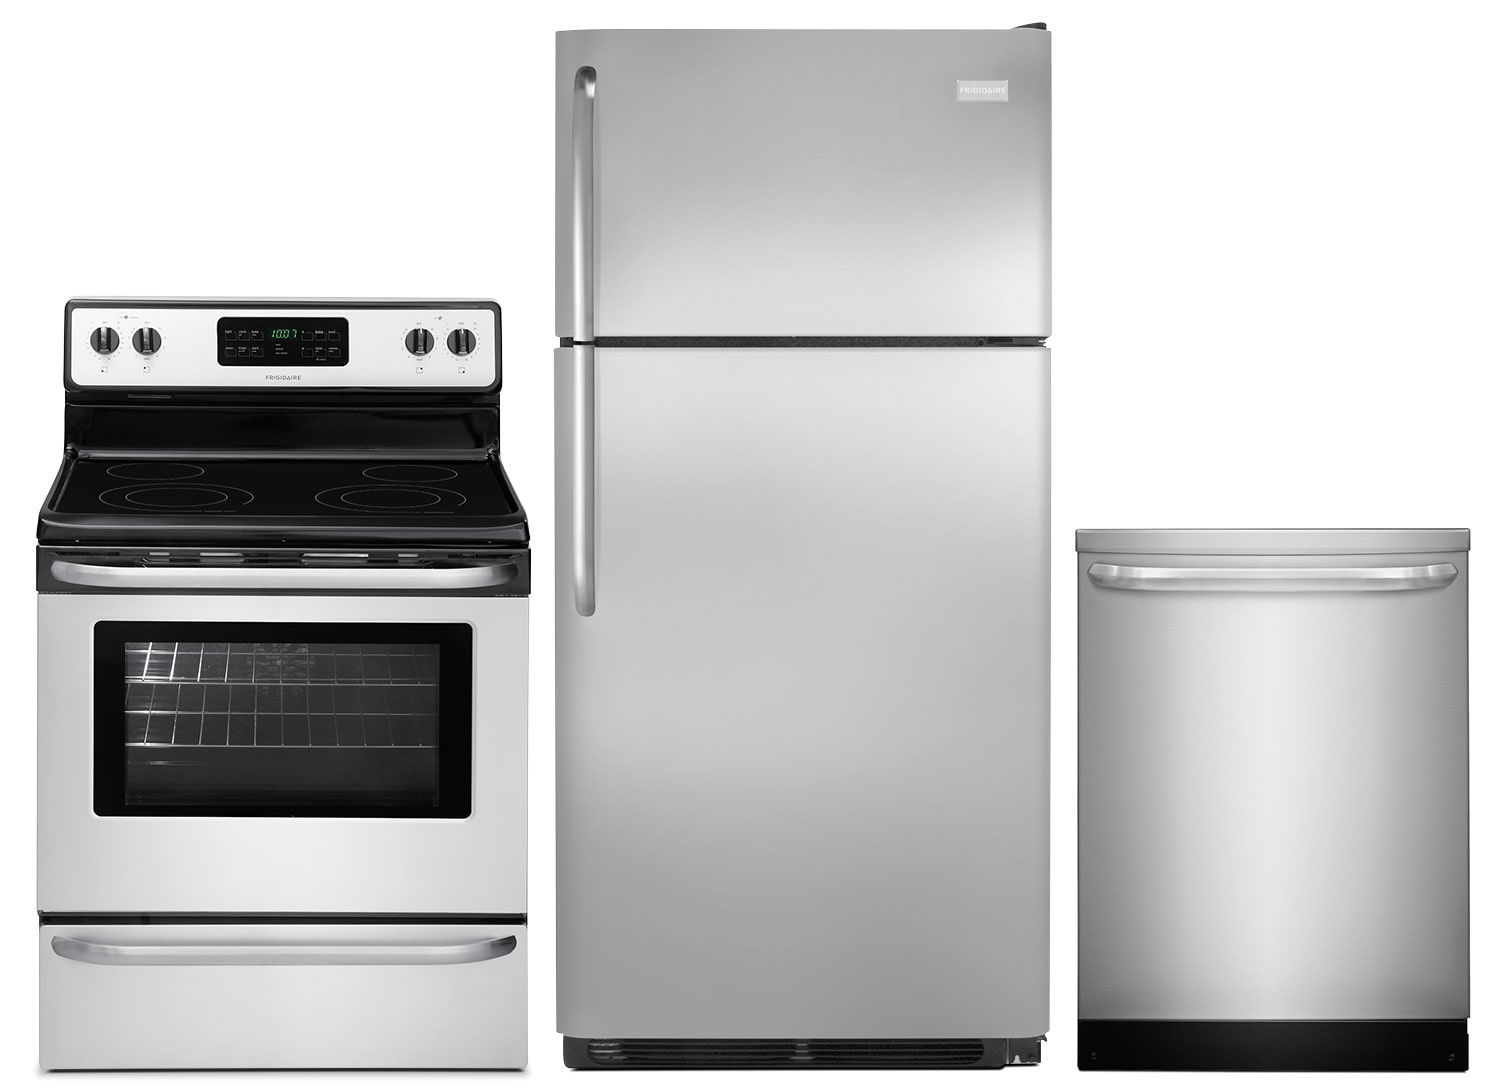 Cooking Products - Frigidaire 18 Cu. Ft. Refrigerator, 5.4 Cu. Ft. Electric Range and Built-In Dishwasher